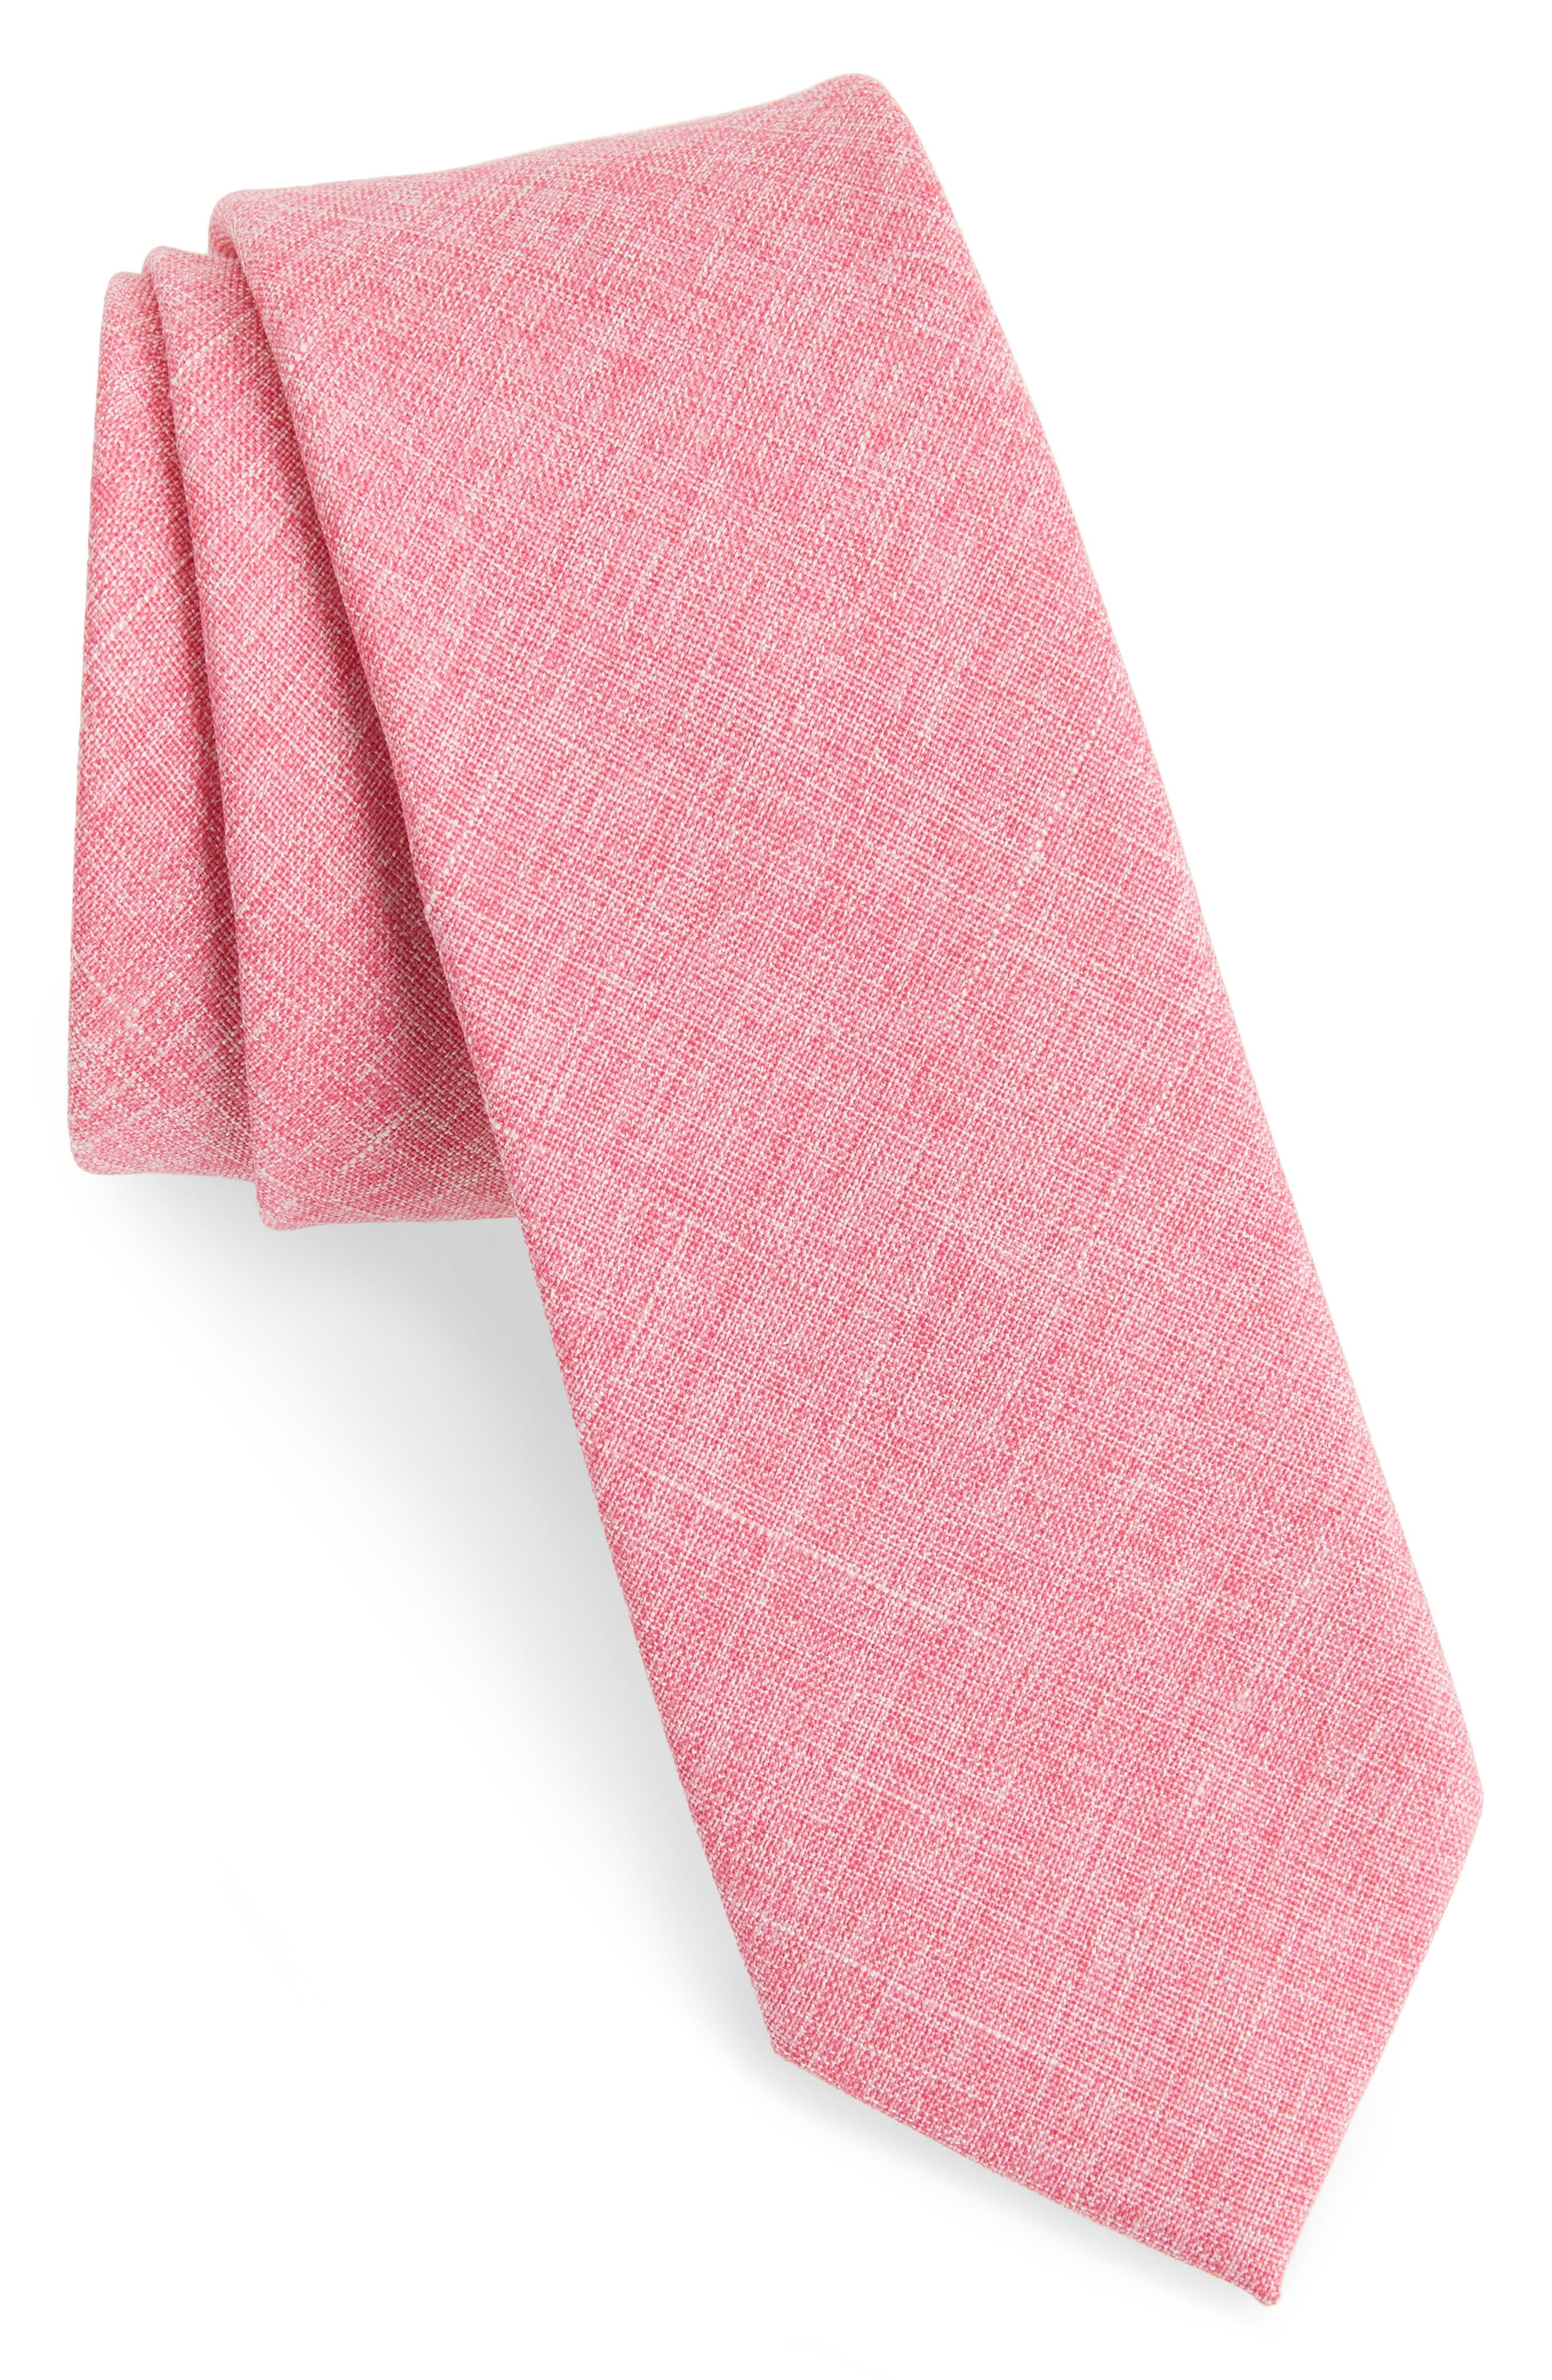 Pinyon Solid Tie,                             Main thumbnail 1, color,                             Red